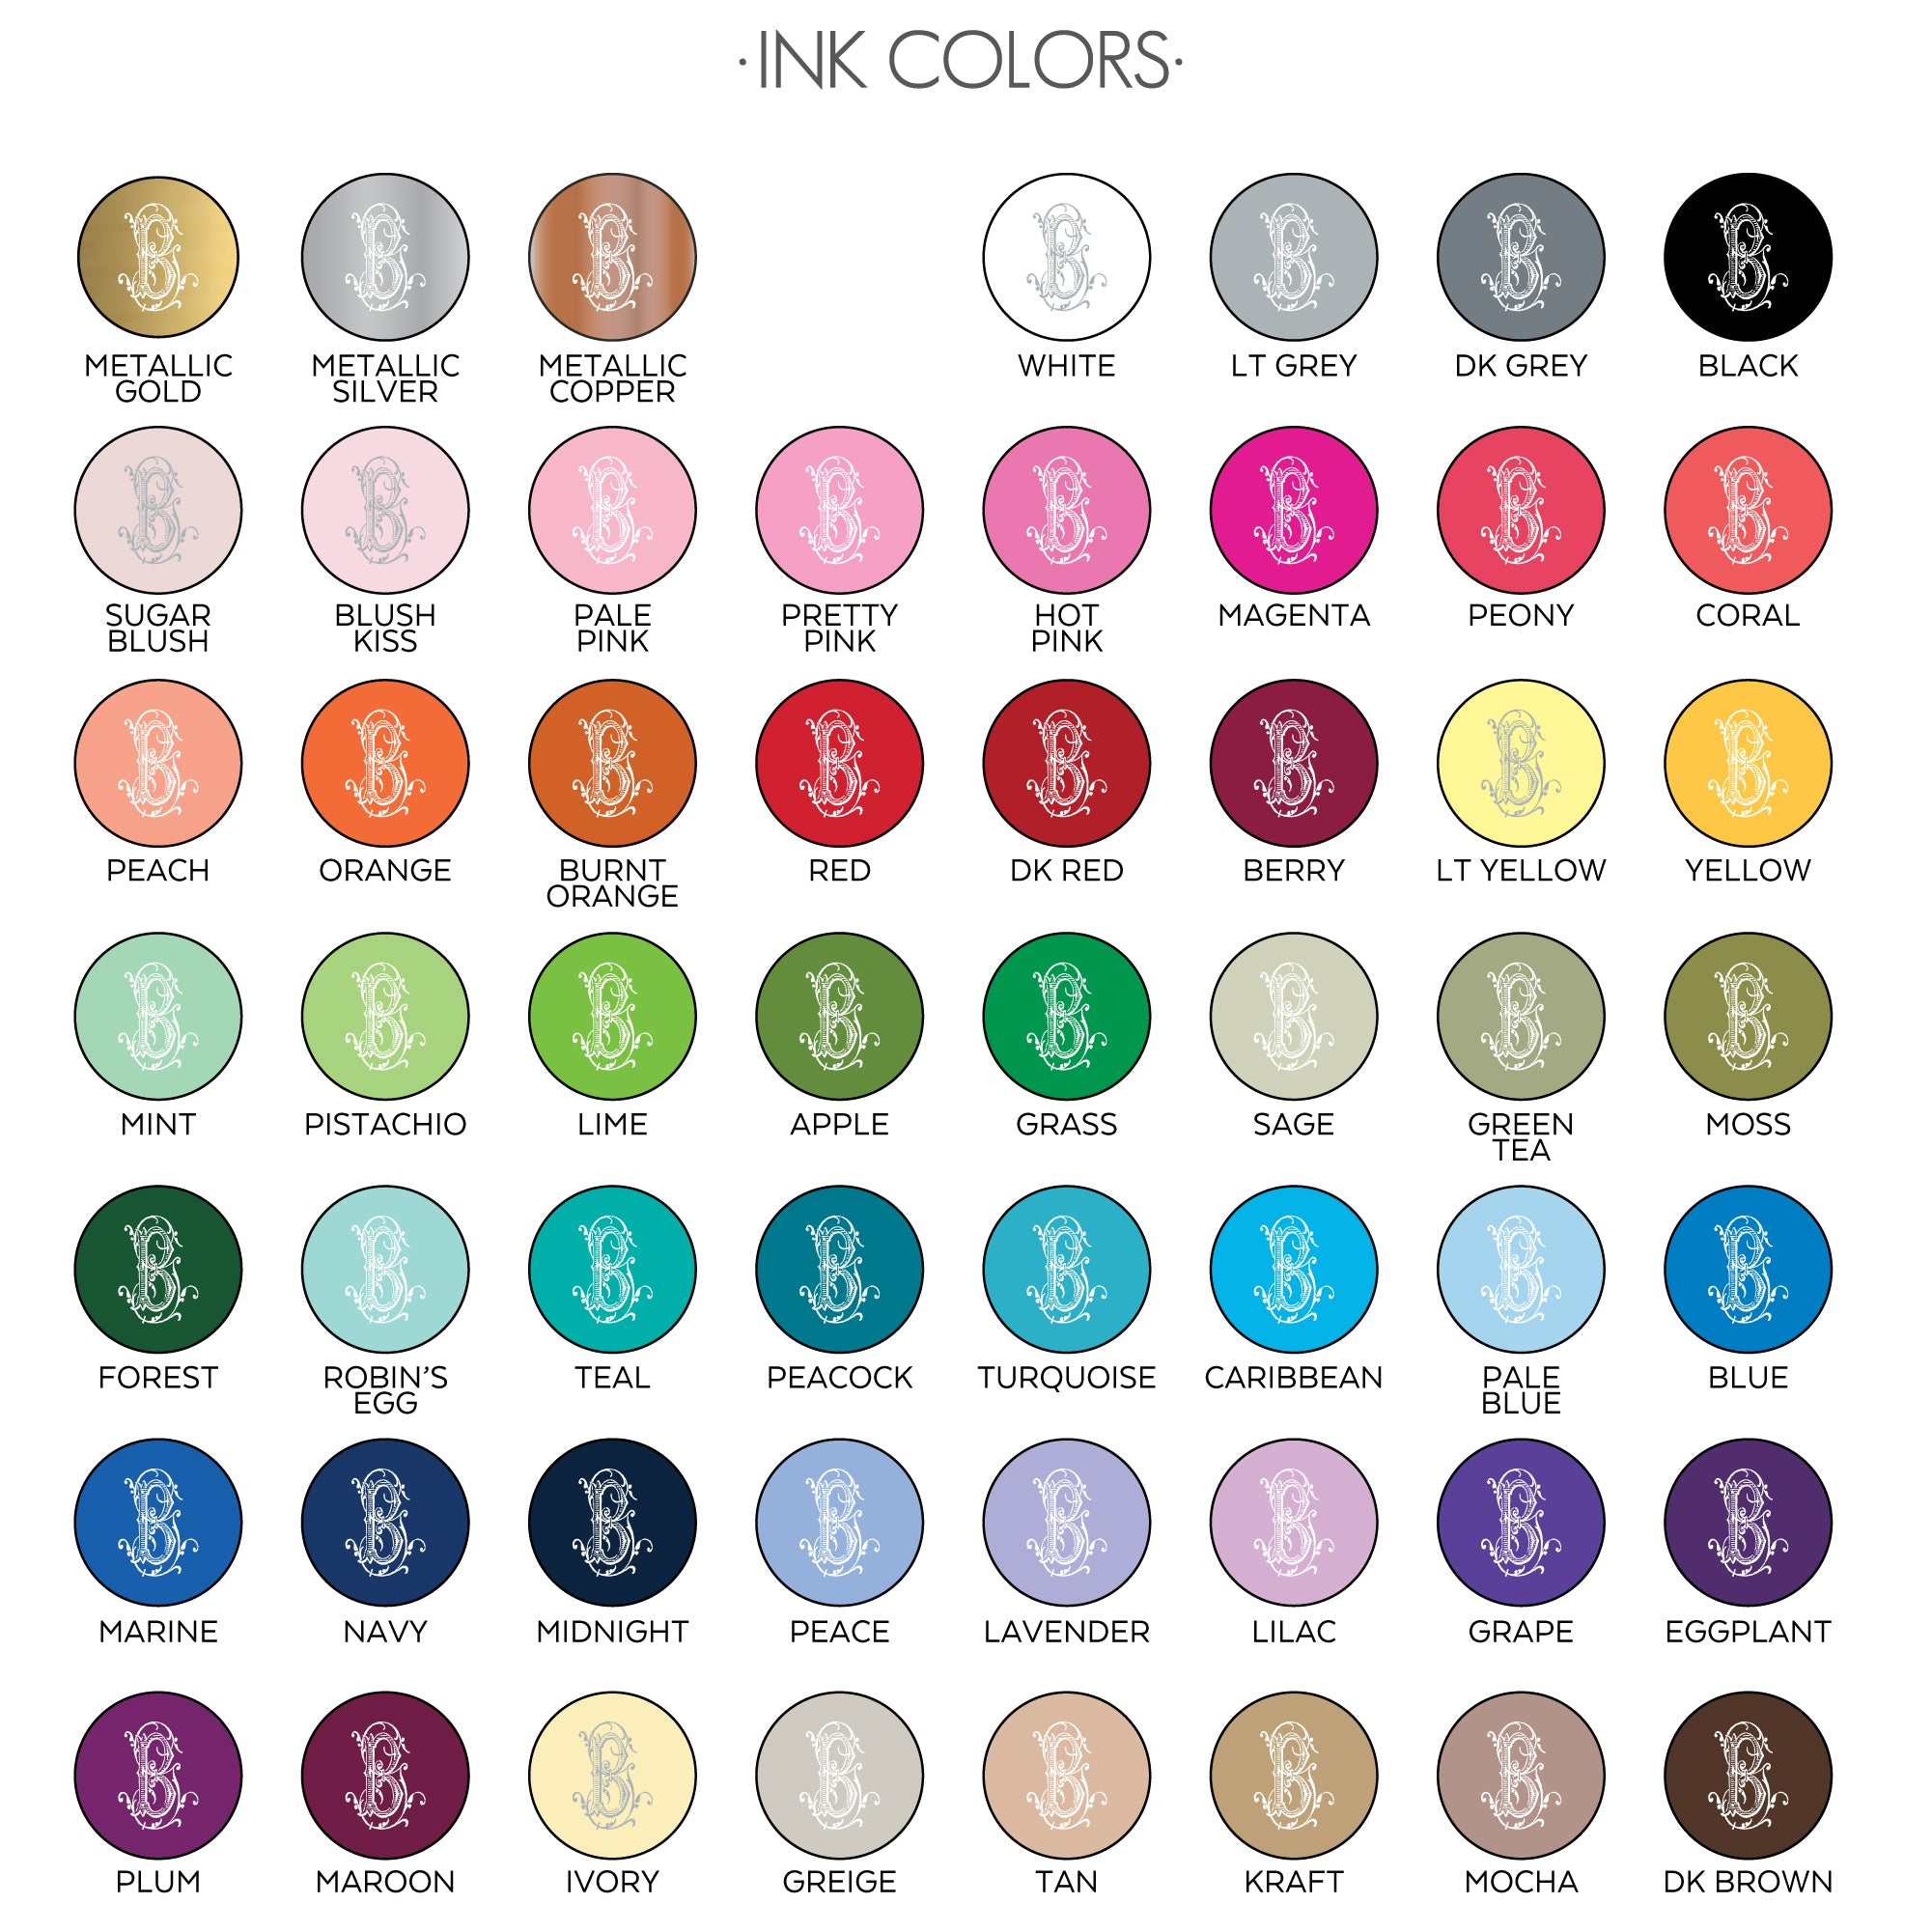 Ink Color Options